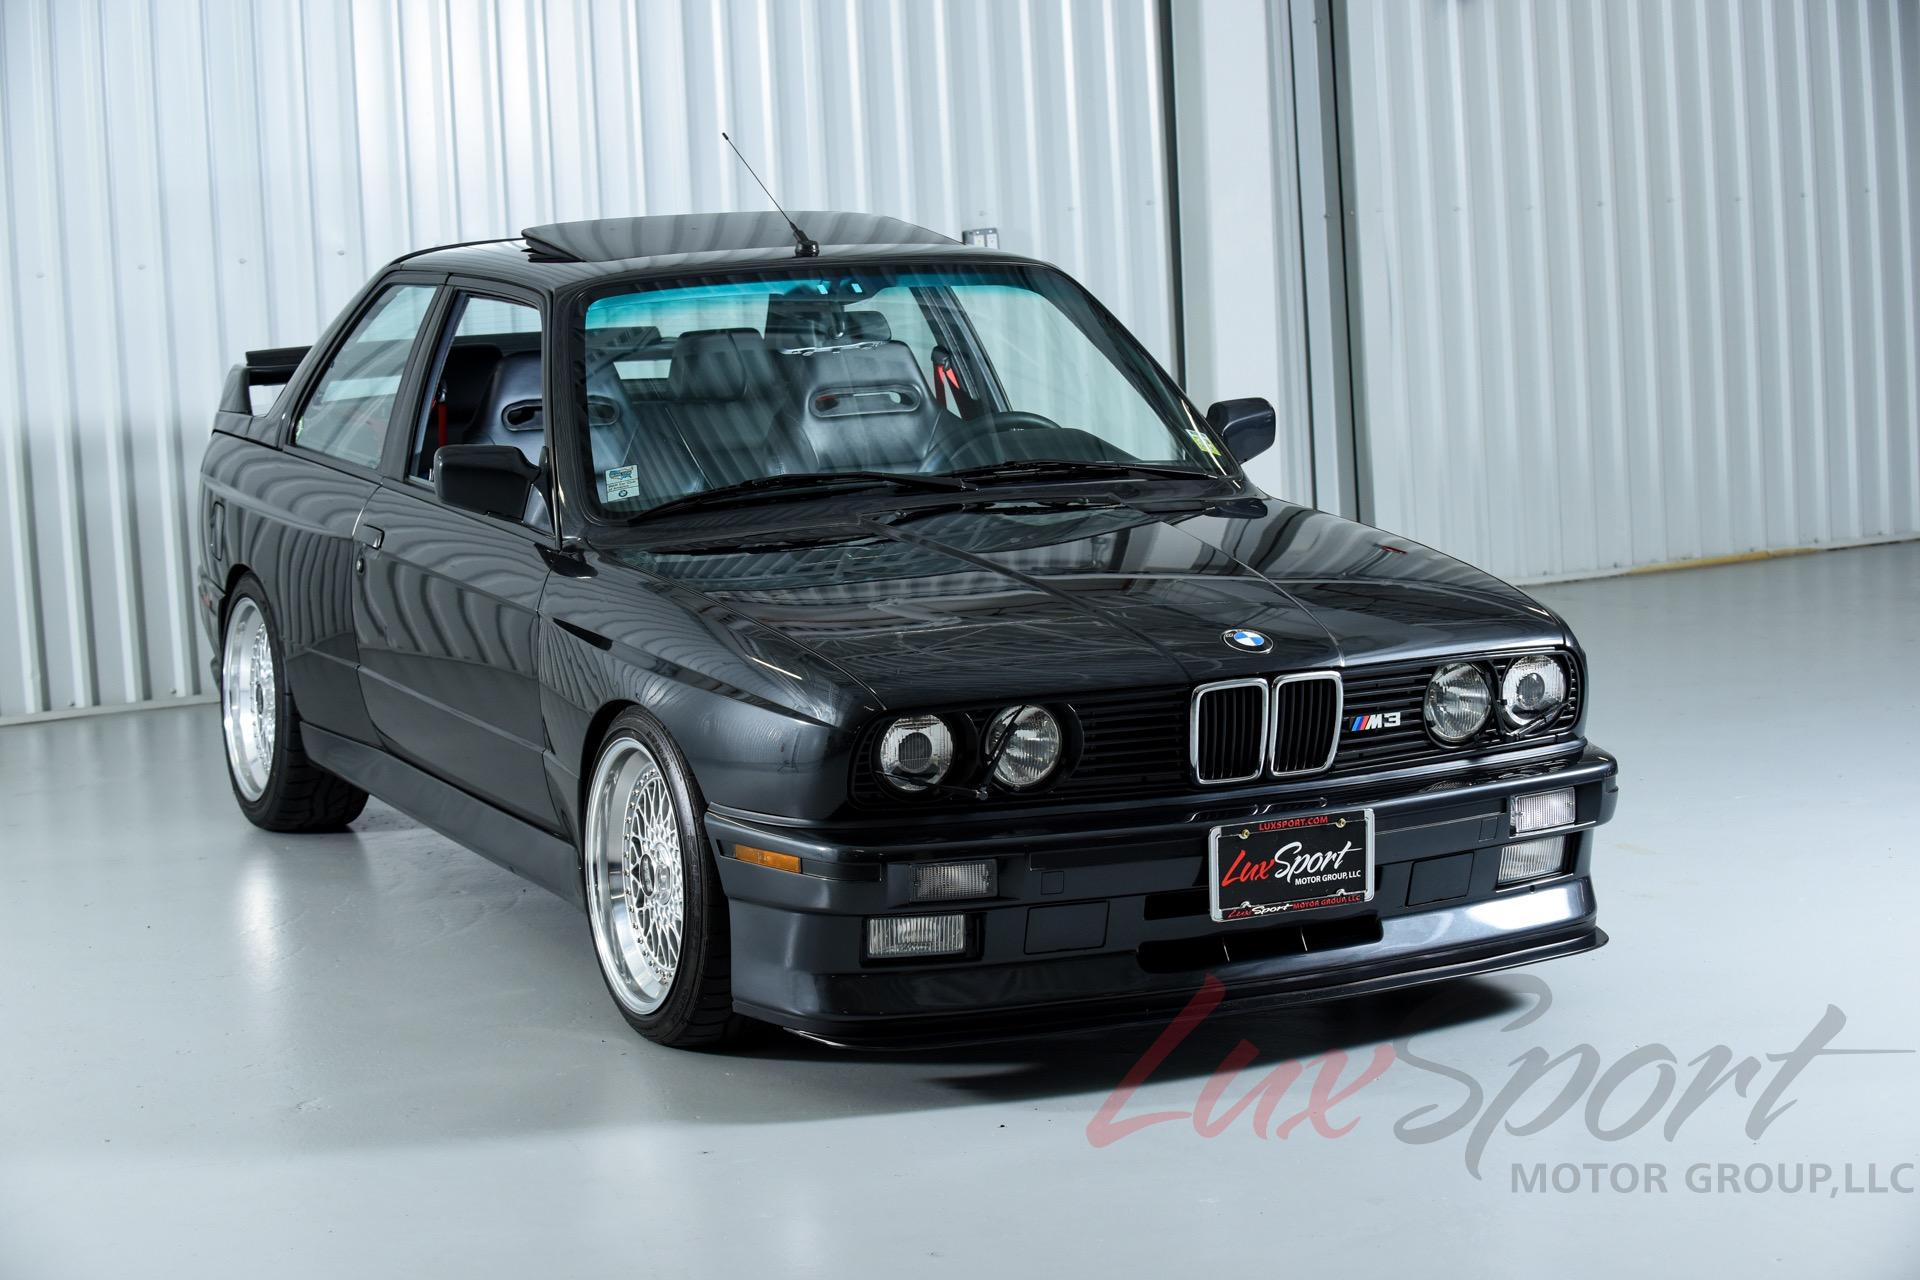 1988 bmw e30 m3 coupe stock 1988150a for sale near. Black Bedroom Furniture Sets. Home Design Ideas